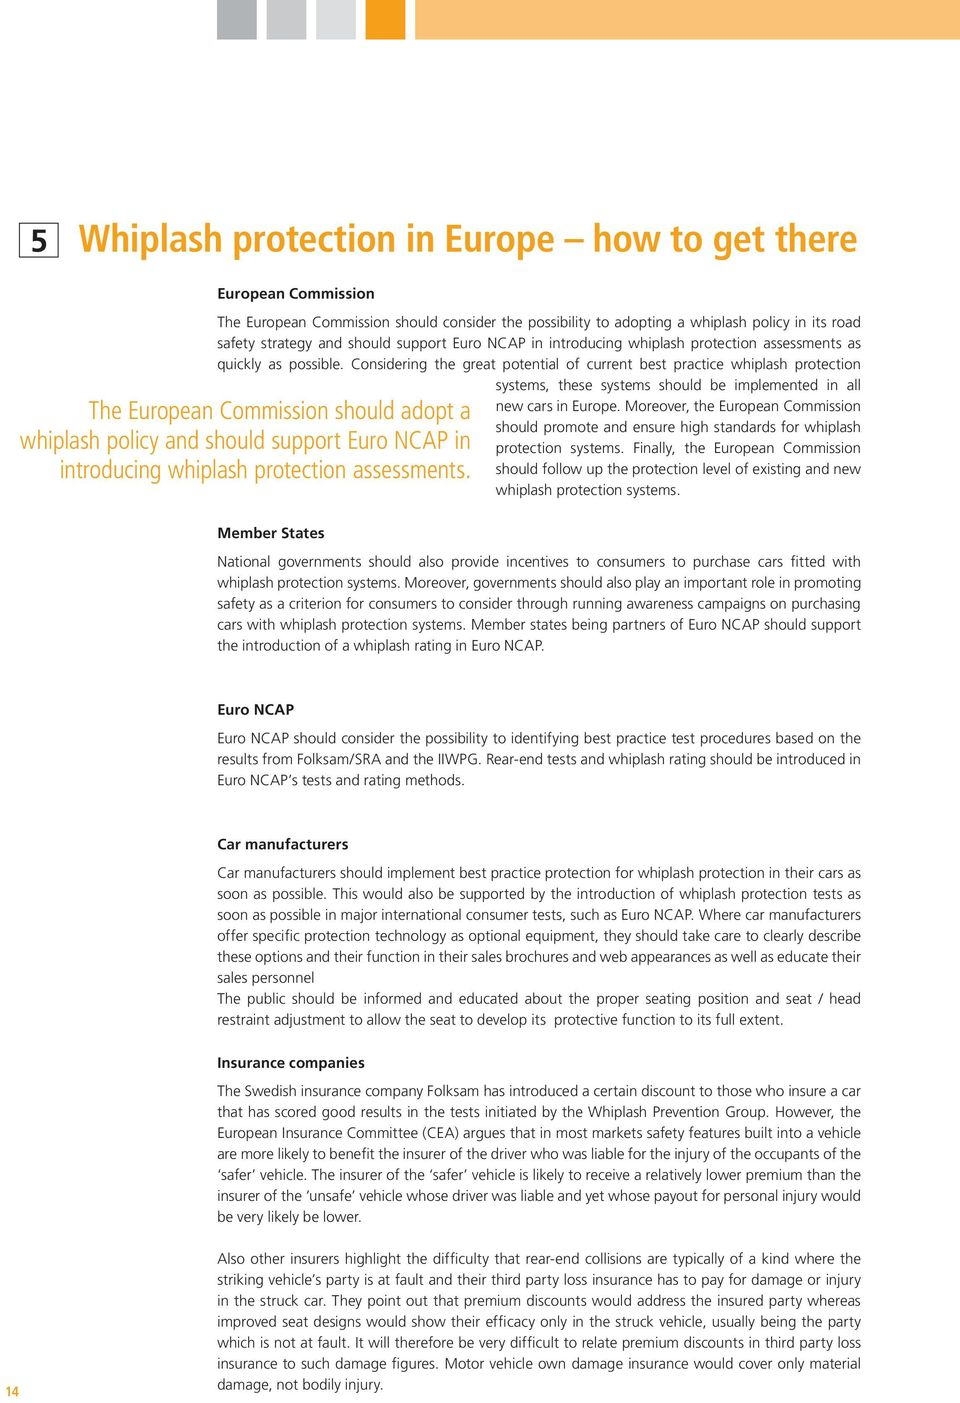 Considering the great potential of current best practice whiplash protection systems, these systems should be implemented in all The European Commission should adopt a whiplash policy and should